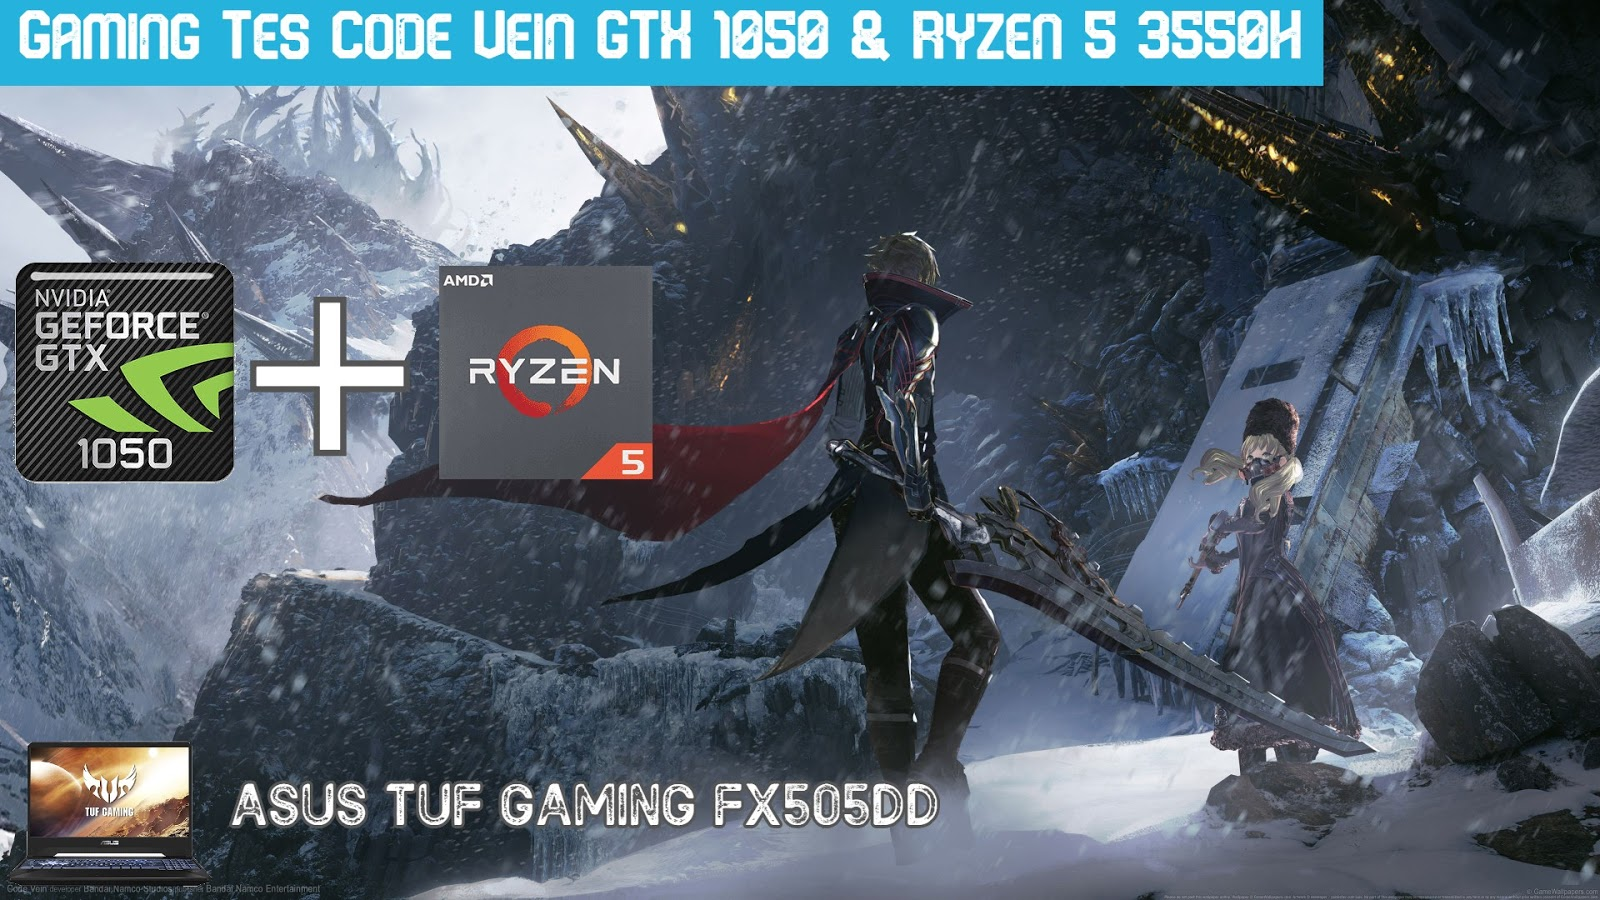 Gaming Test Code Vein Rata Kanan 60 FPS FX505DD